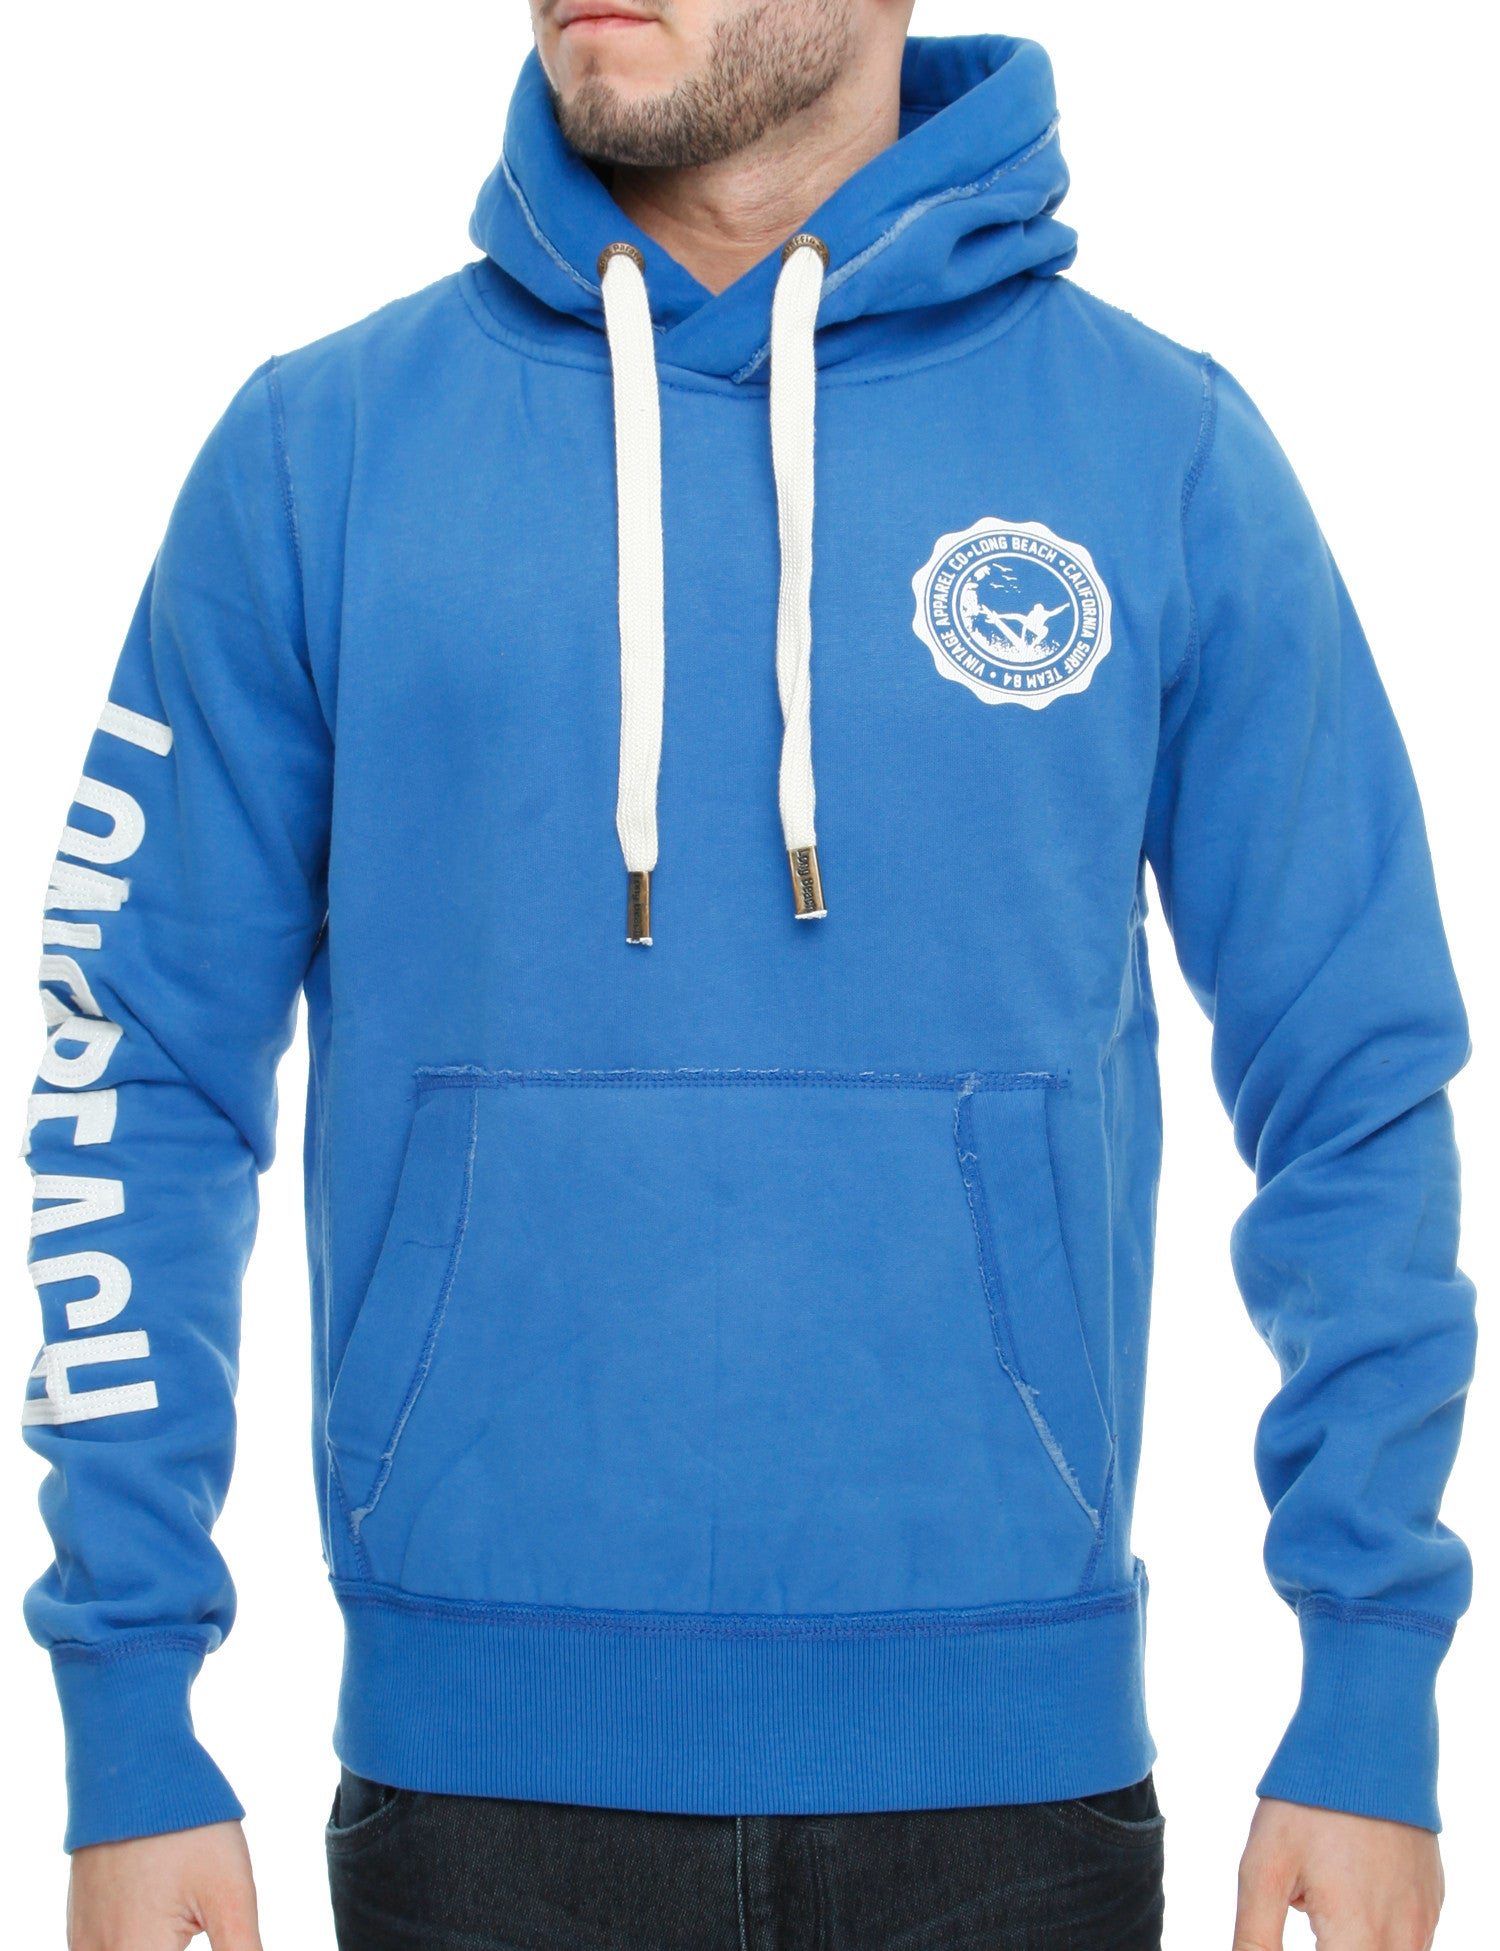 Long Beach Gerard Hoody Royal Blue